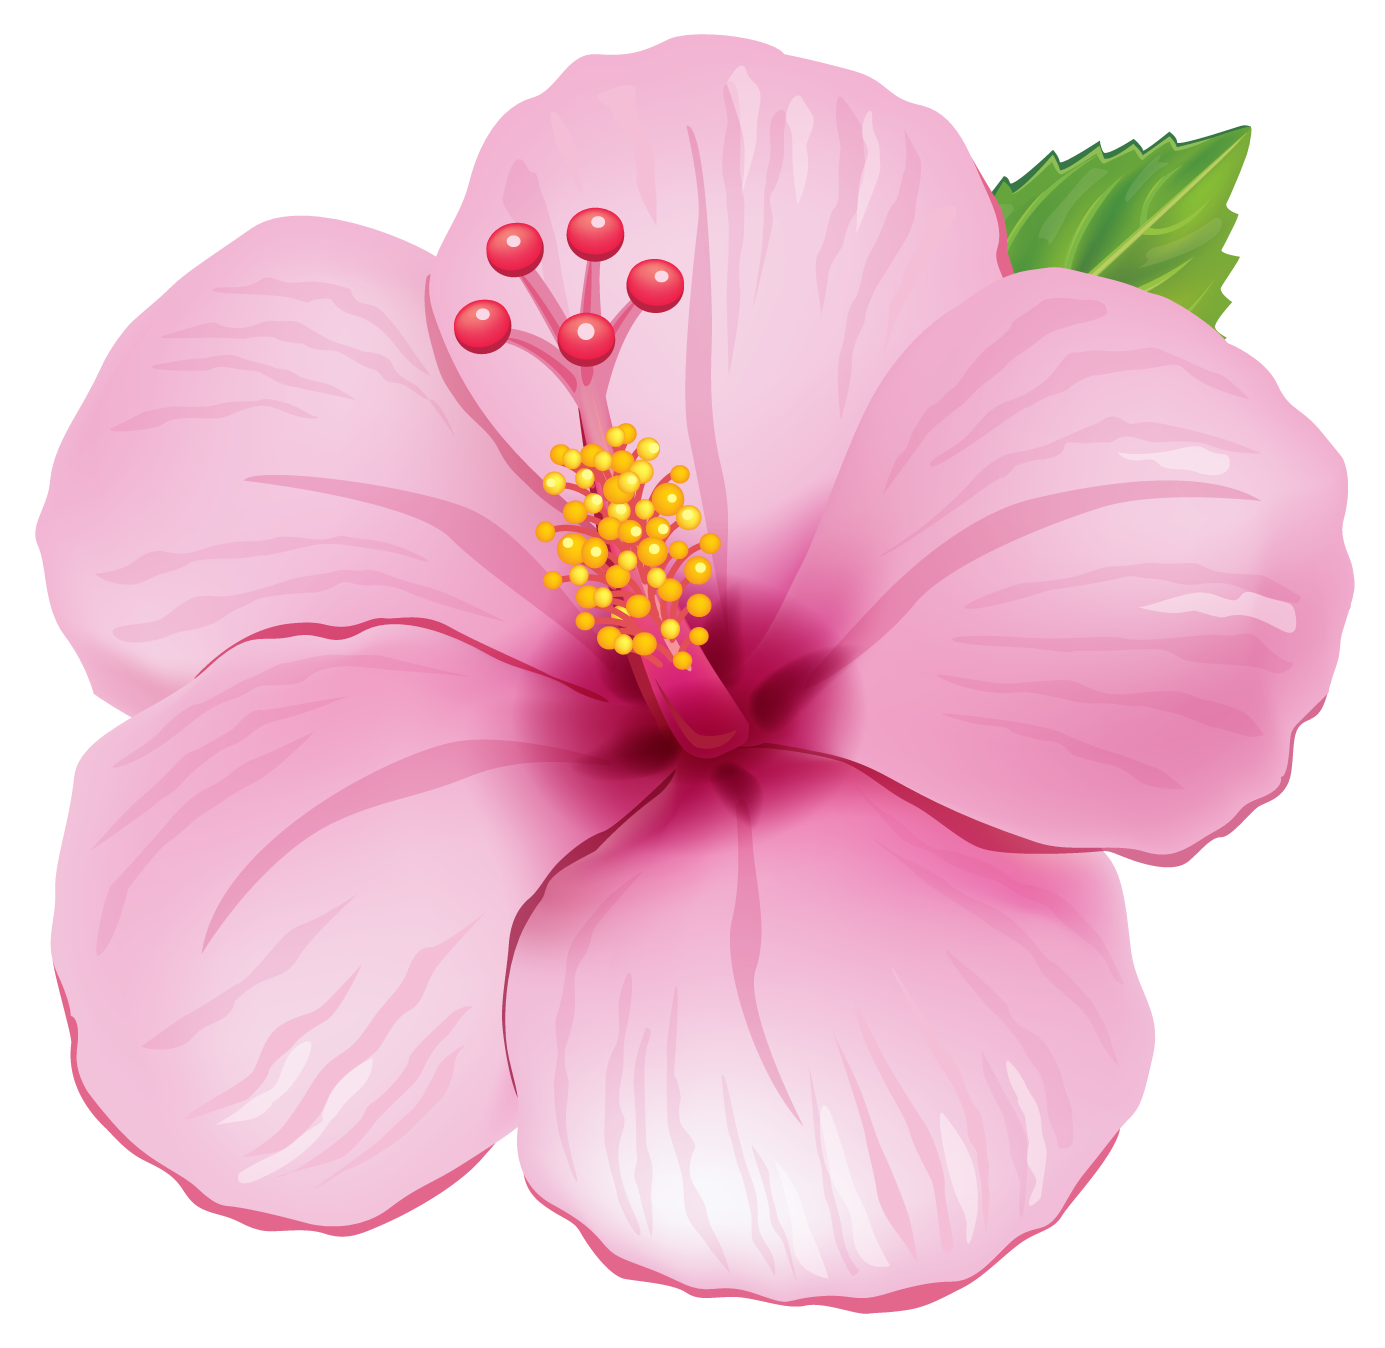 Tropical flowers .png. Flower png transparent images